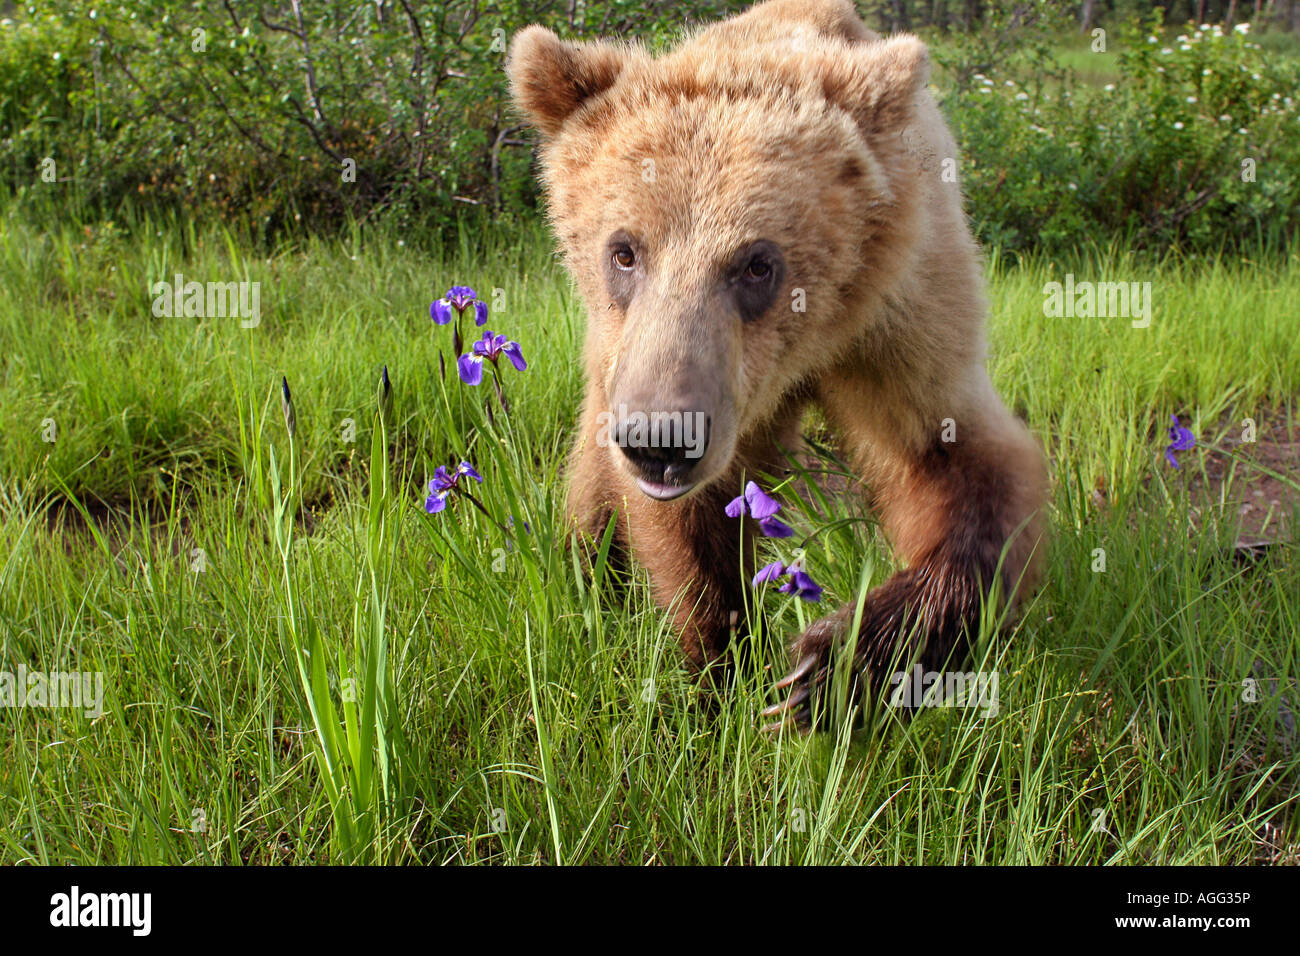 Grizzly bear walking - photo#45